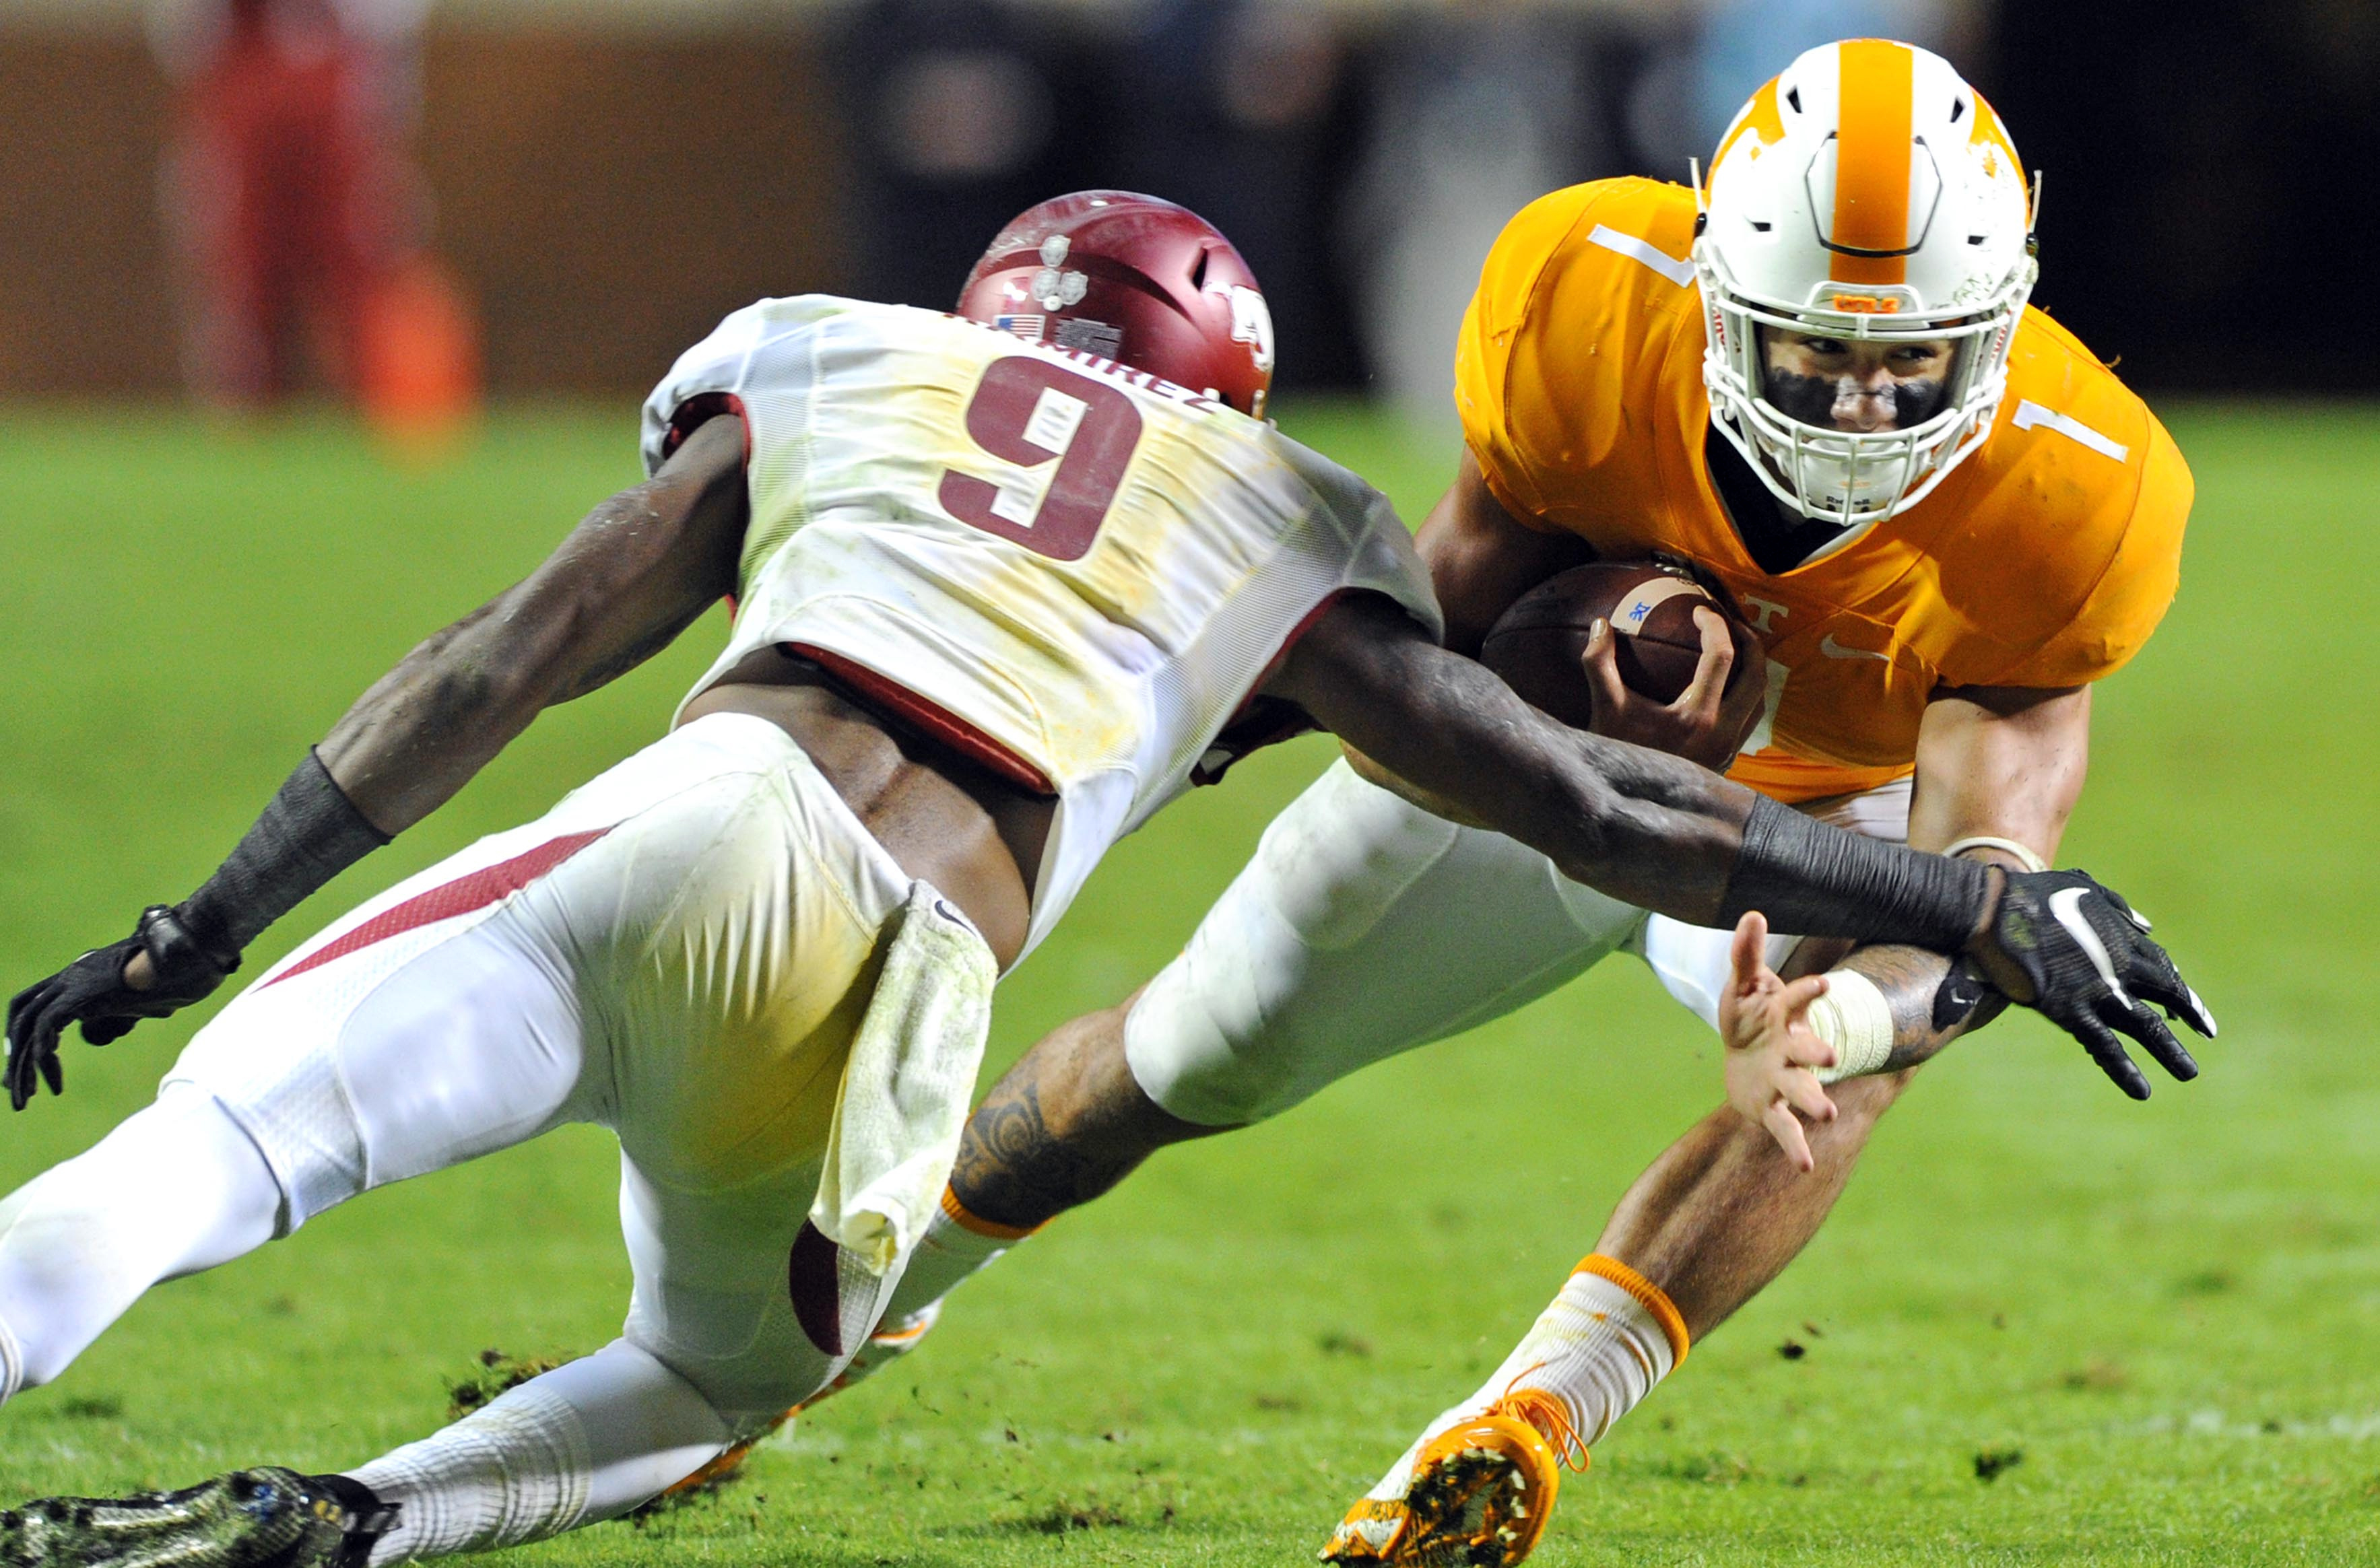 Tennessee running back Jalen Hurd (1) runs the ball against Arkansas defensive back Santos Ramirez (9) during the first half of an NCAA college football game at Neyland Stadium in Knoxville, Tenn. on Saturday, Oct. 3, 2015. (Michael Patrick/Knoxville News